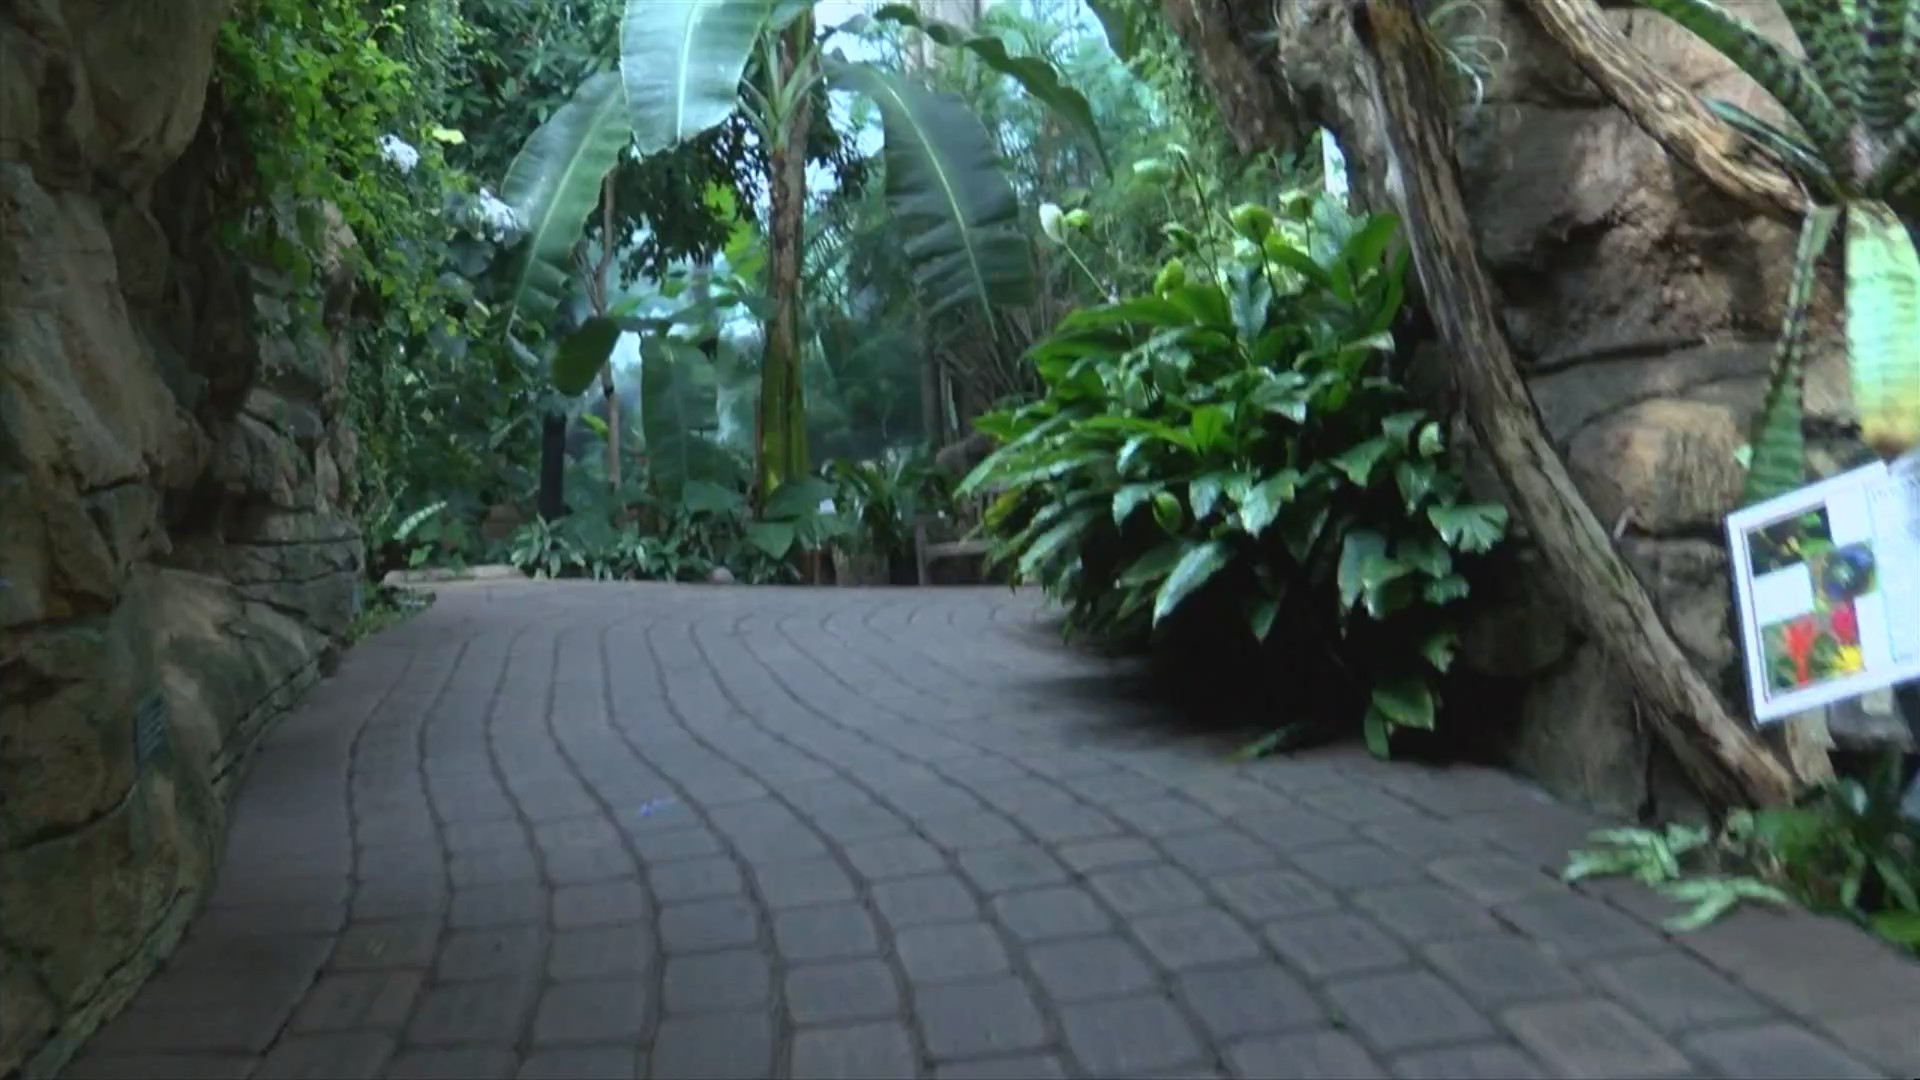 Destination Illinois: Rock Island's Botanical Center